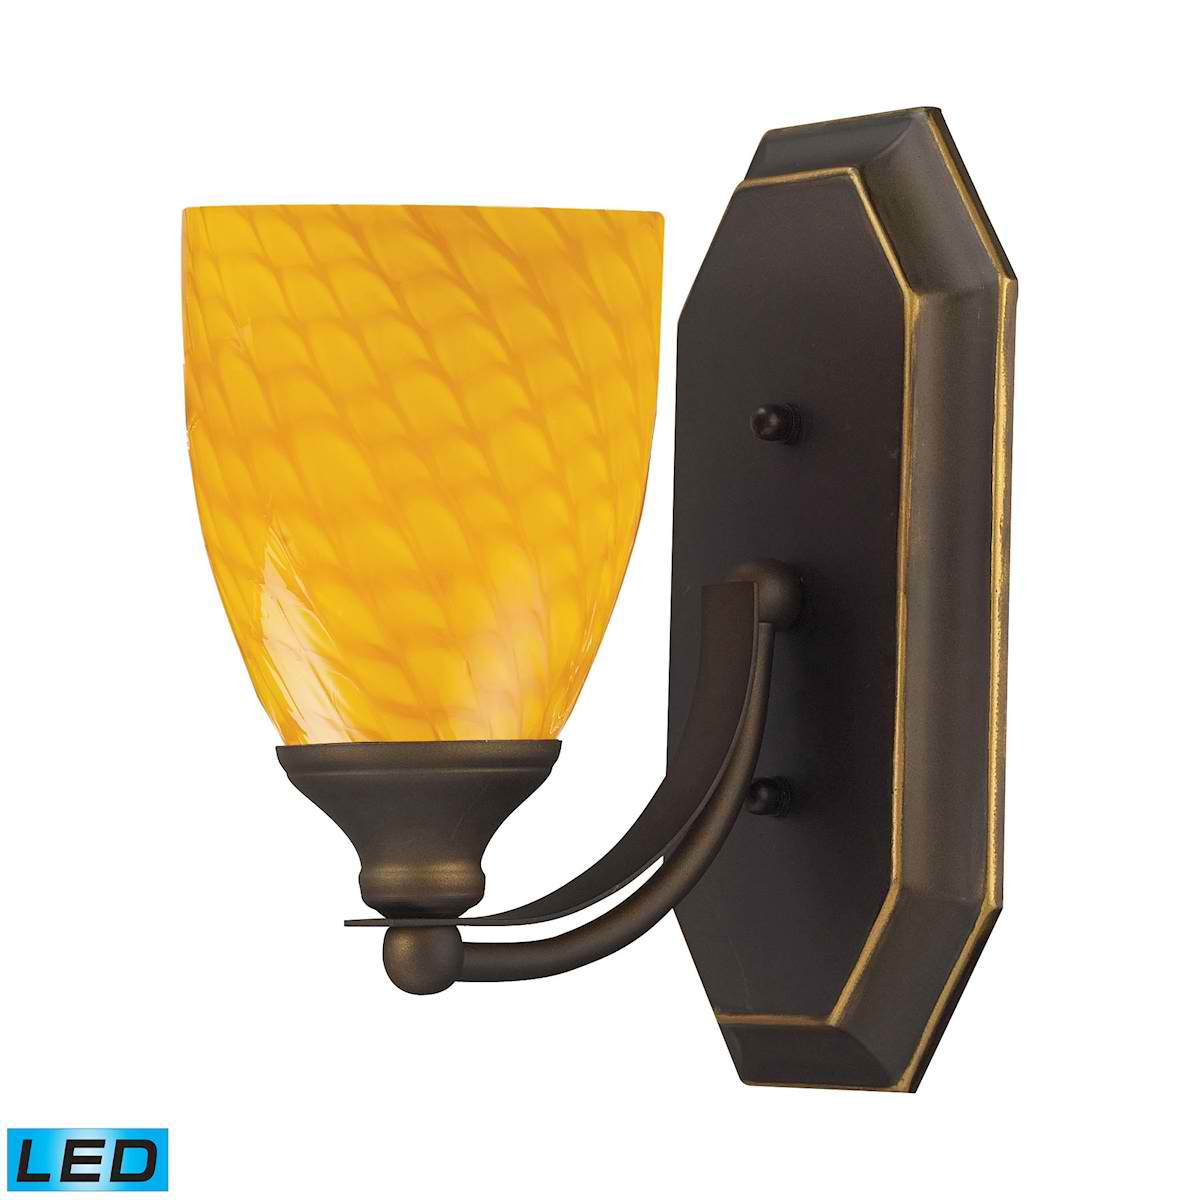 1 Light Vanity in Aged Bronze and Canary Glass - LED Offering Up To 800 Lumens (60 Watt Equivalent)